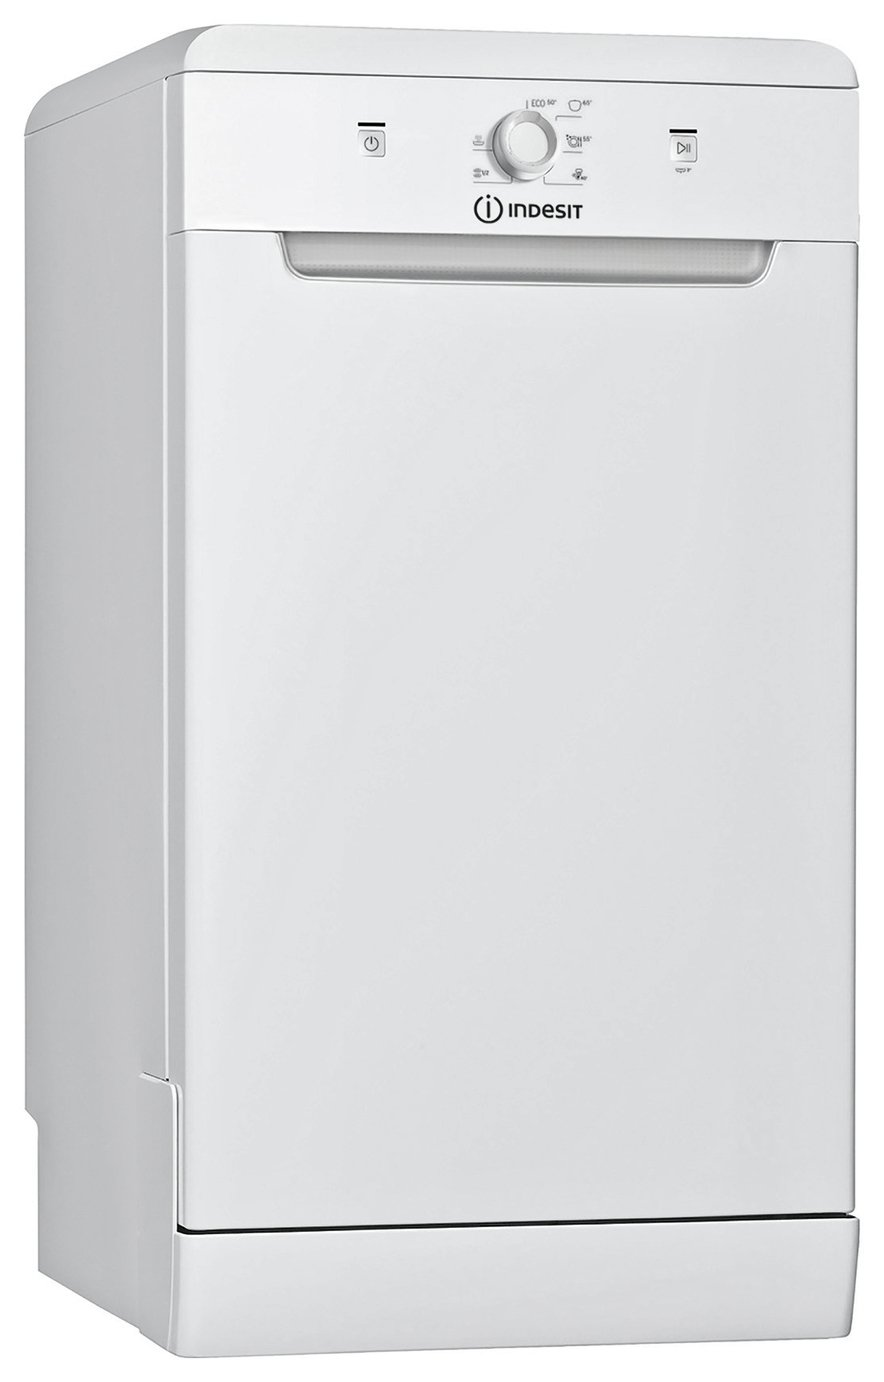 Indesit DSFE1B10 Slimline Dishwasher - White from Indesit